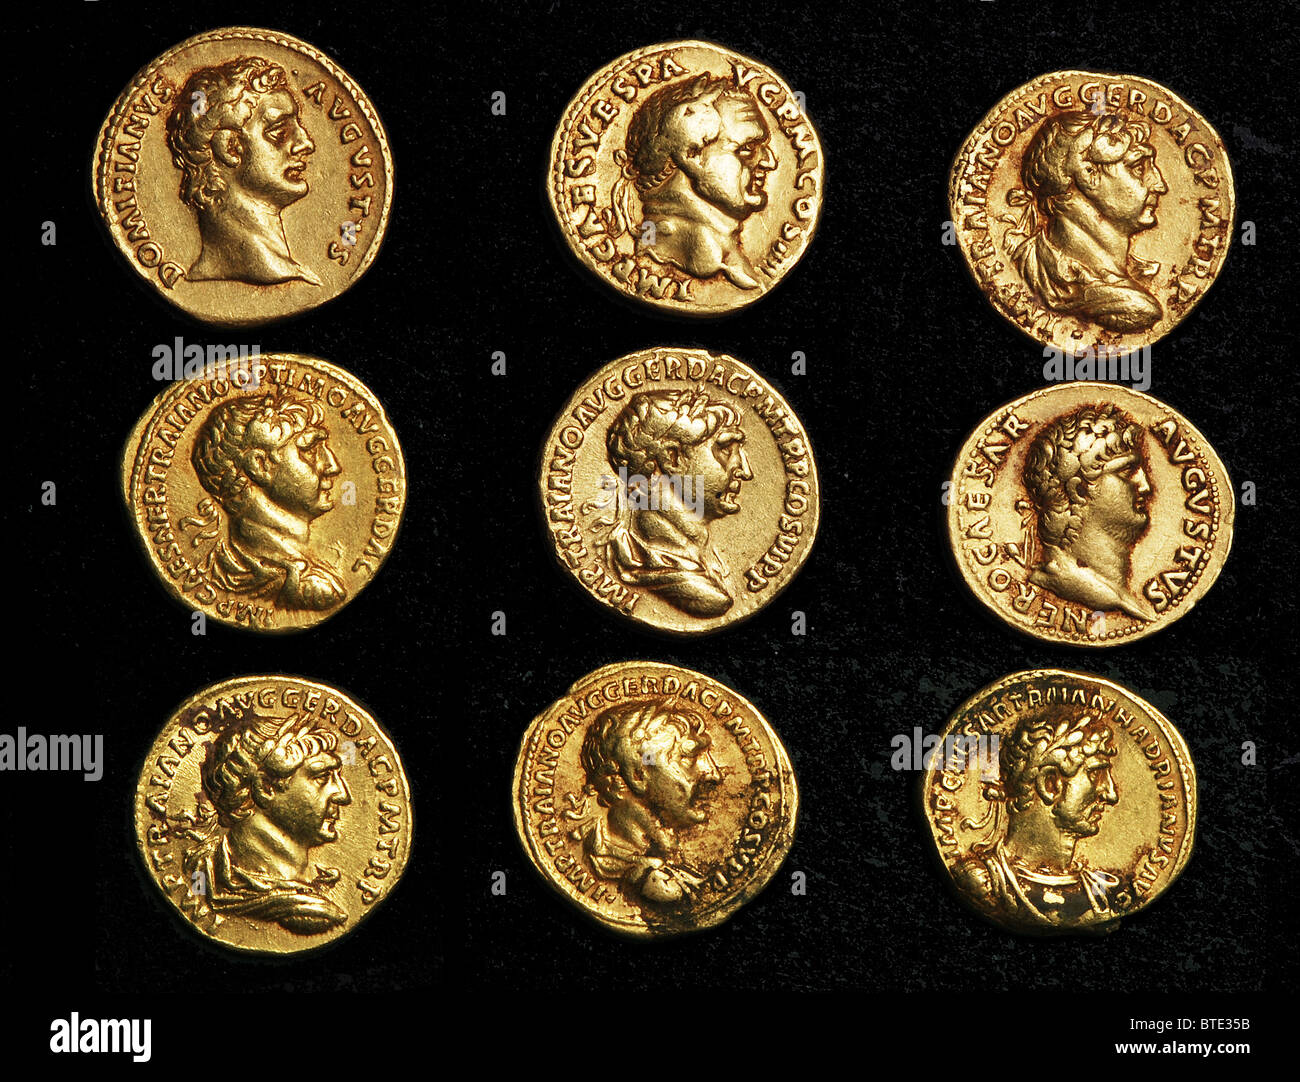 5473. Imperial Roman gold coins bearing busts of the varrious Emperors. - Stock Image